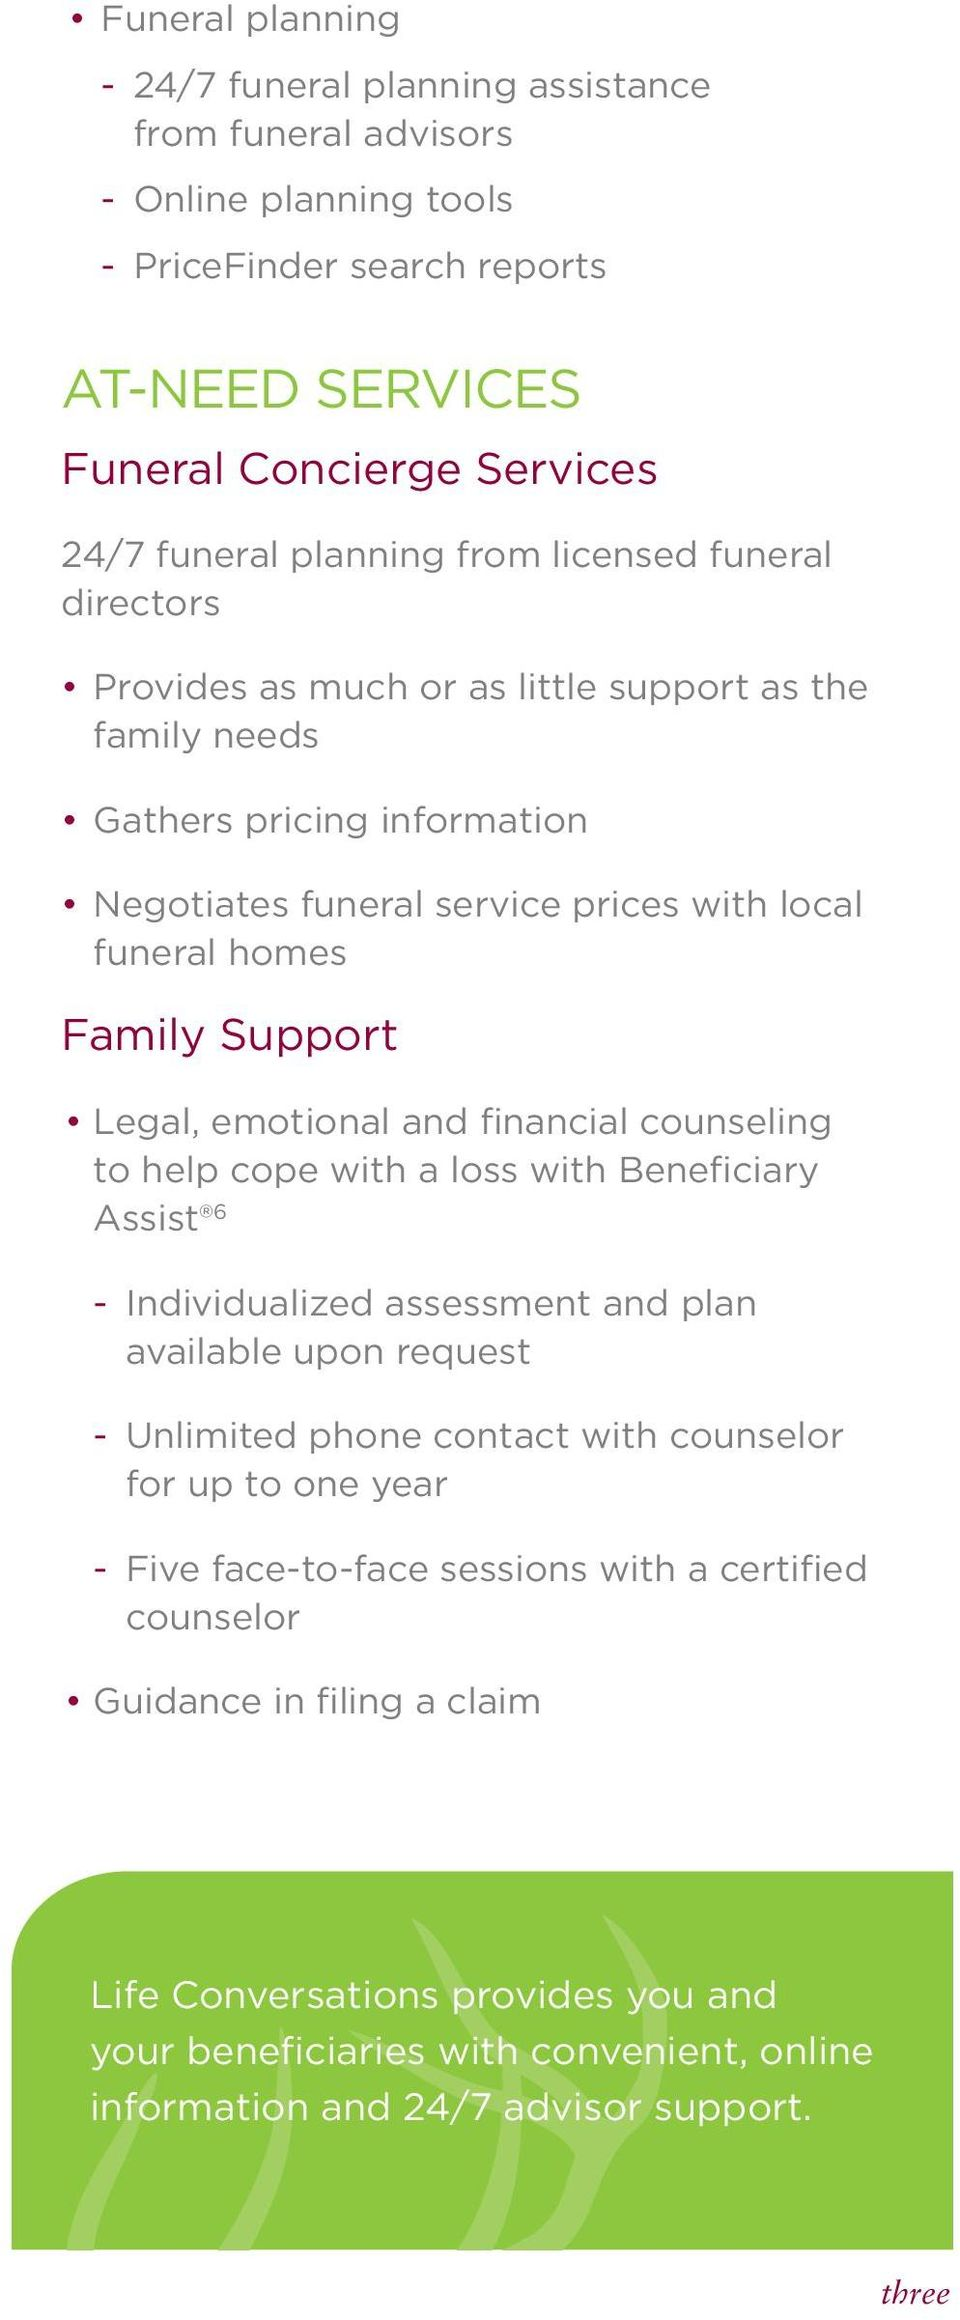 emotional and financial counseling to help cope with a loss with Beneficiary Assist 6 - Individualized assessment and plan available upon request - Unlimited phone contact with counselor for up to